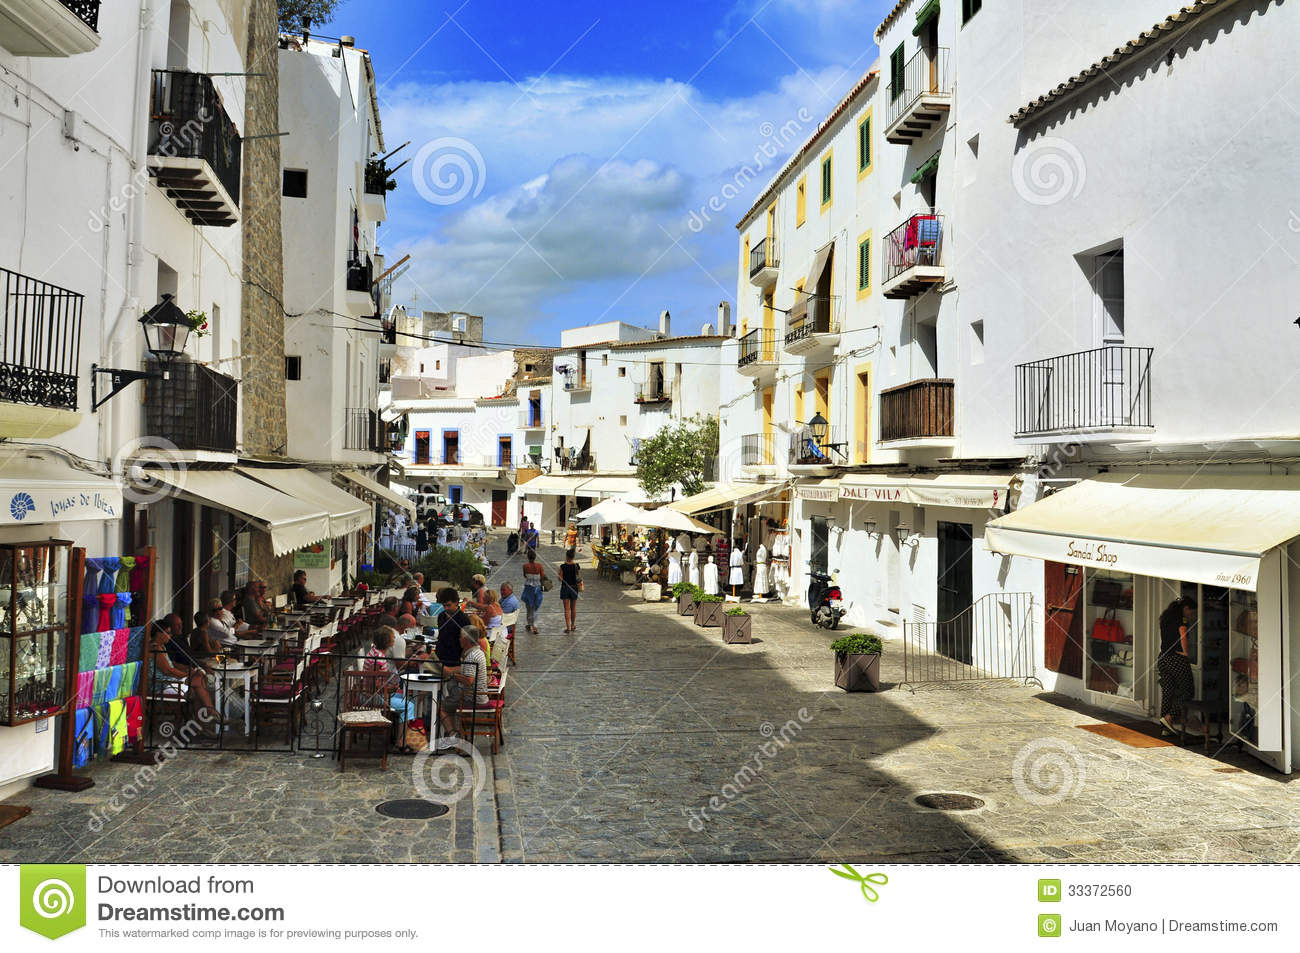 Dalt Vila, The Old Town Of Ibiza Town, In Balearic Islands, Spai.